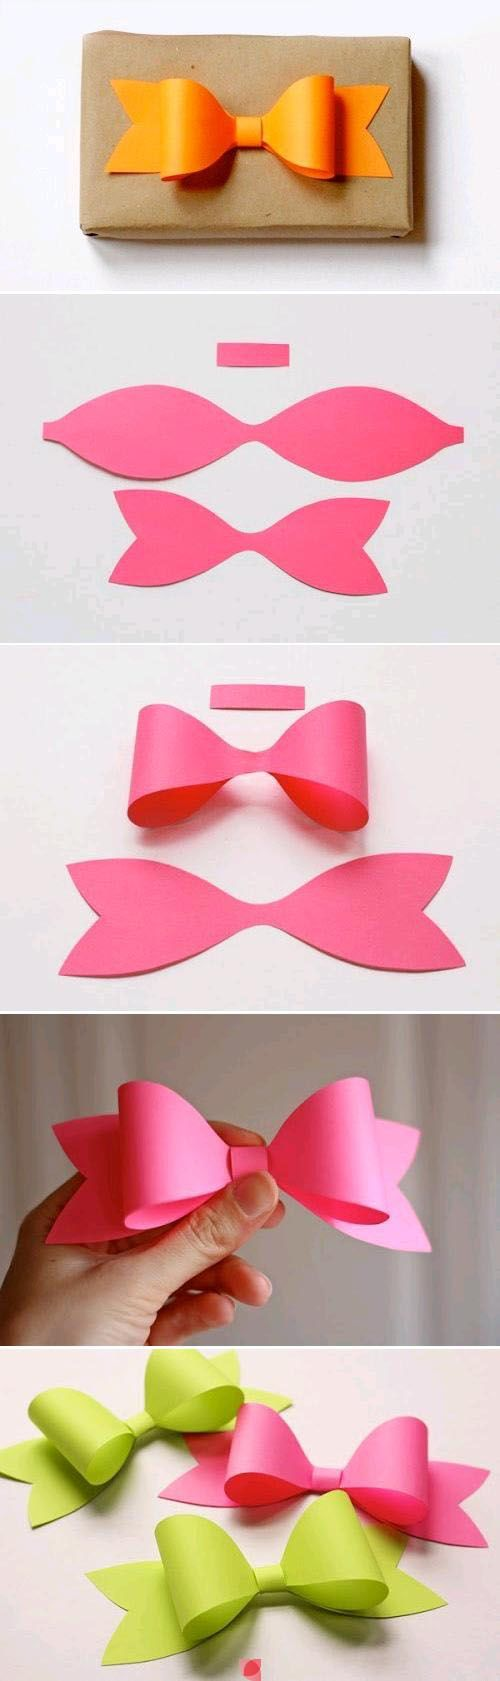 Fitas de Papel Perfeitos - / Perfect Paper Ribbons -